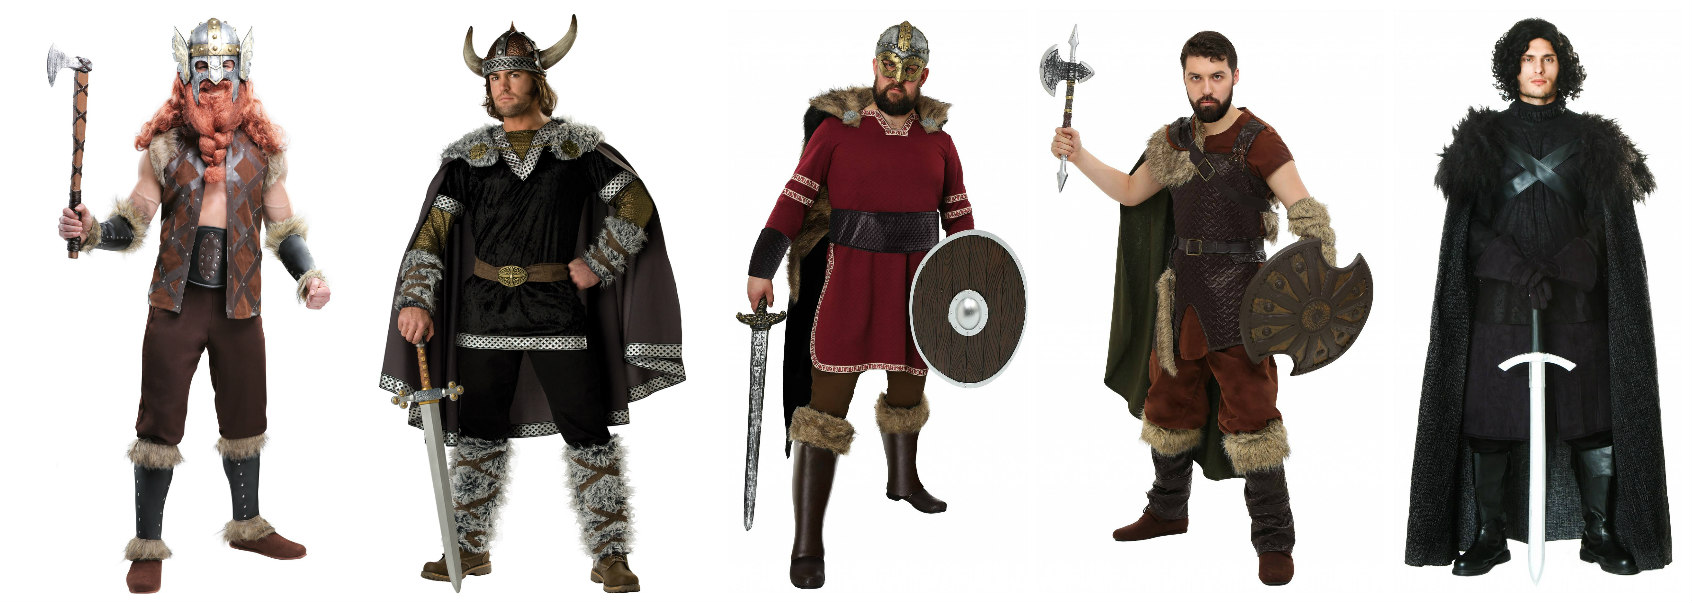 Northern Invasion A Complete Viking Costume Guide Halloweencostumes Com Blog